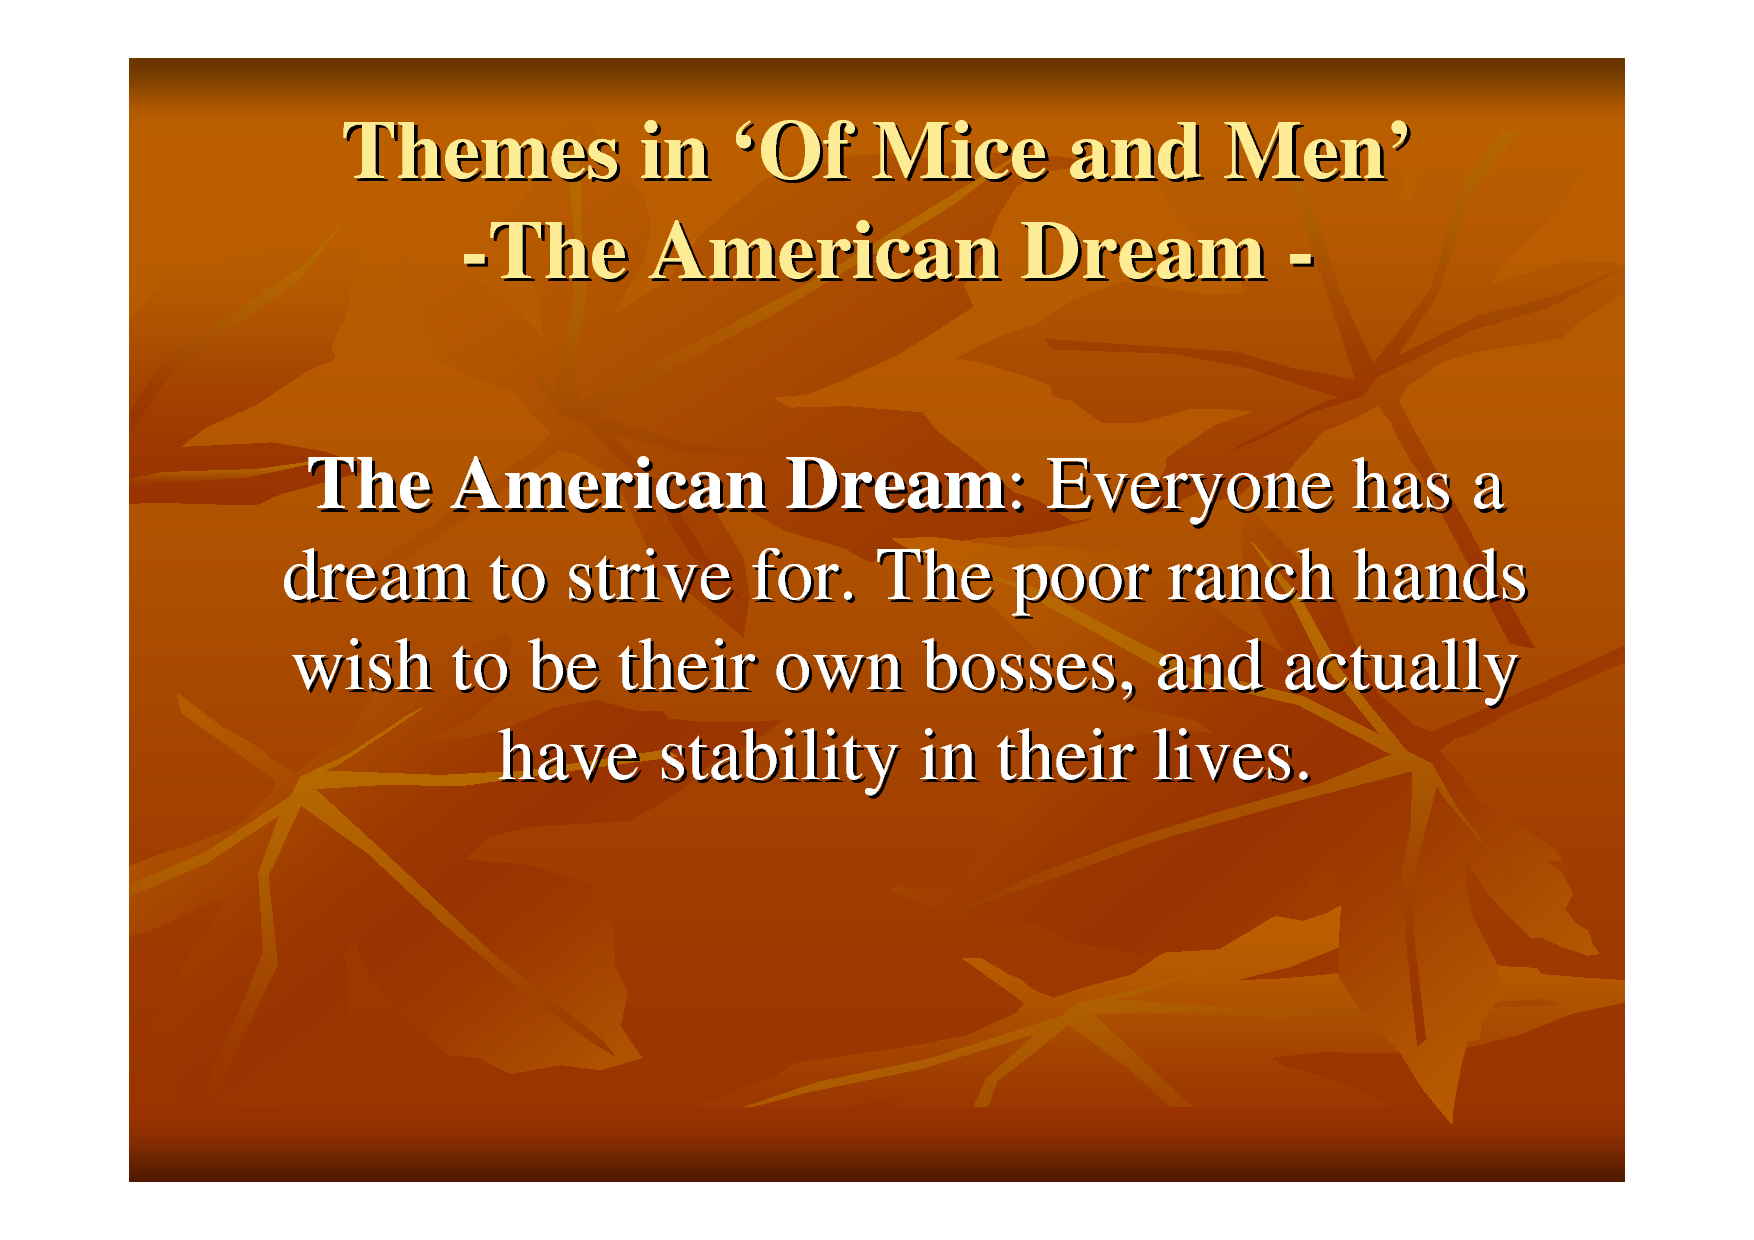 the american dream in of mice The american dream is written into the declaration of independence: life  of mice and men themes litcharts llc, july 22, 2013 retrieved may 18.